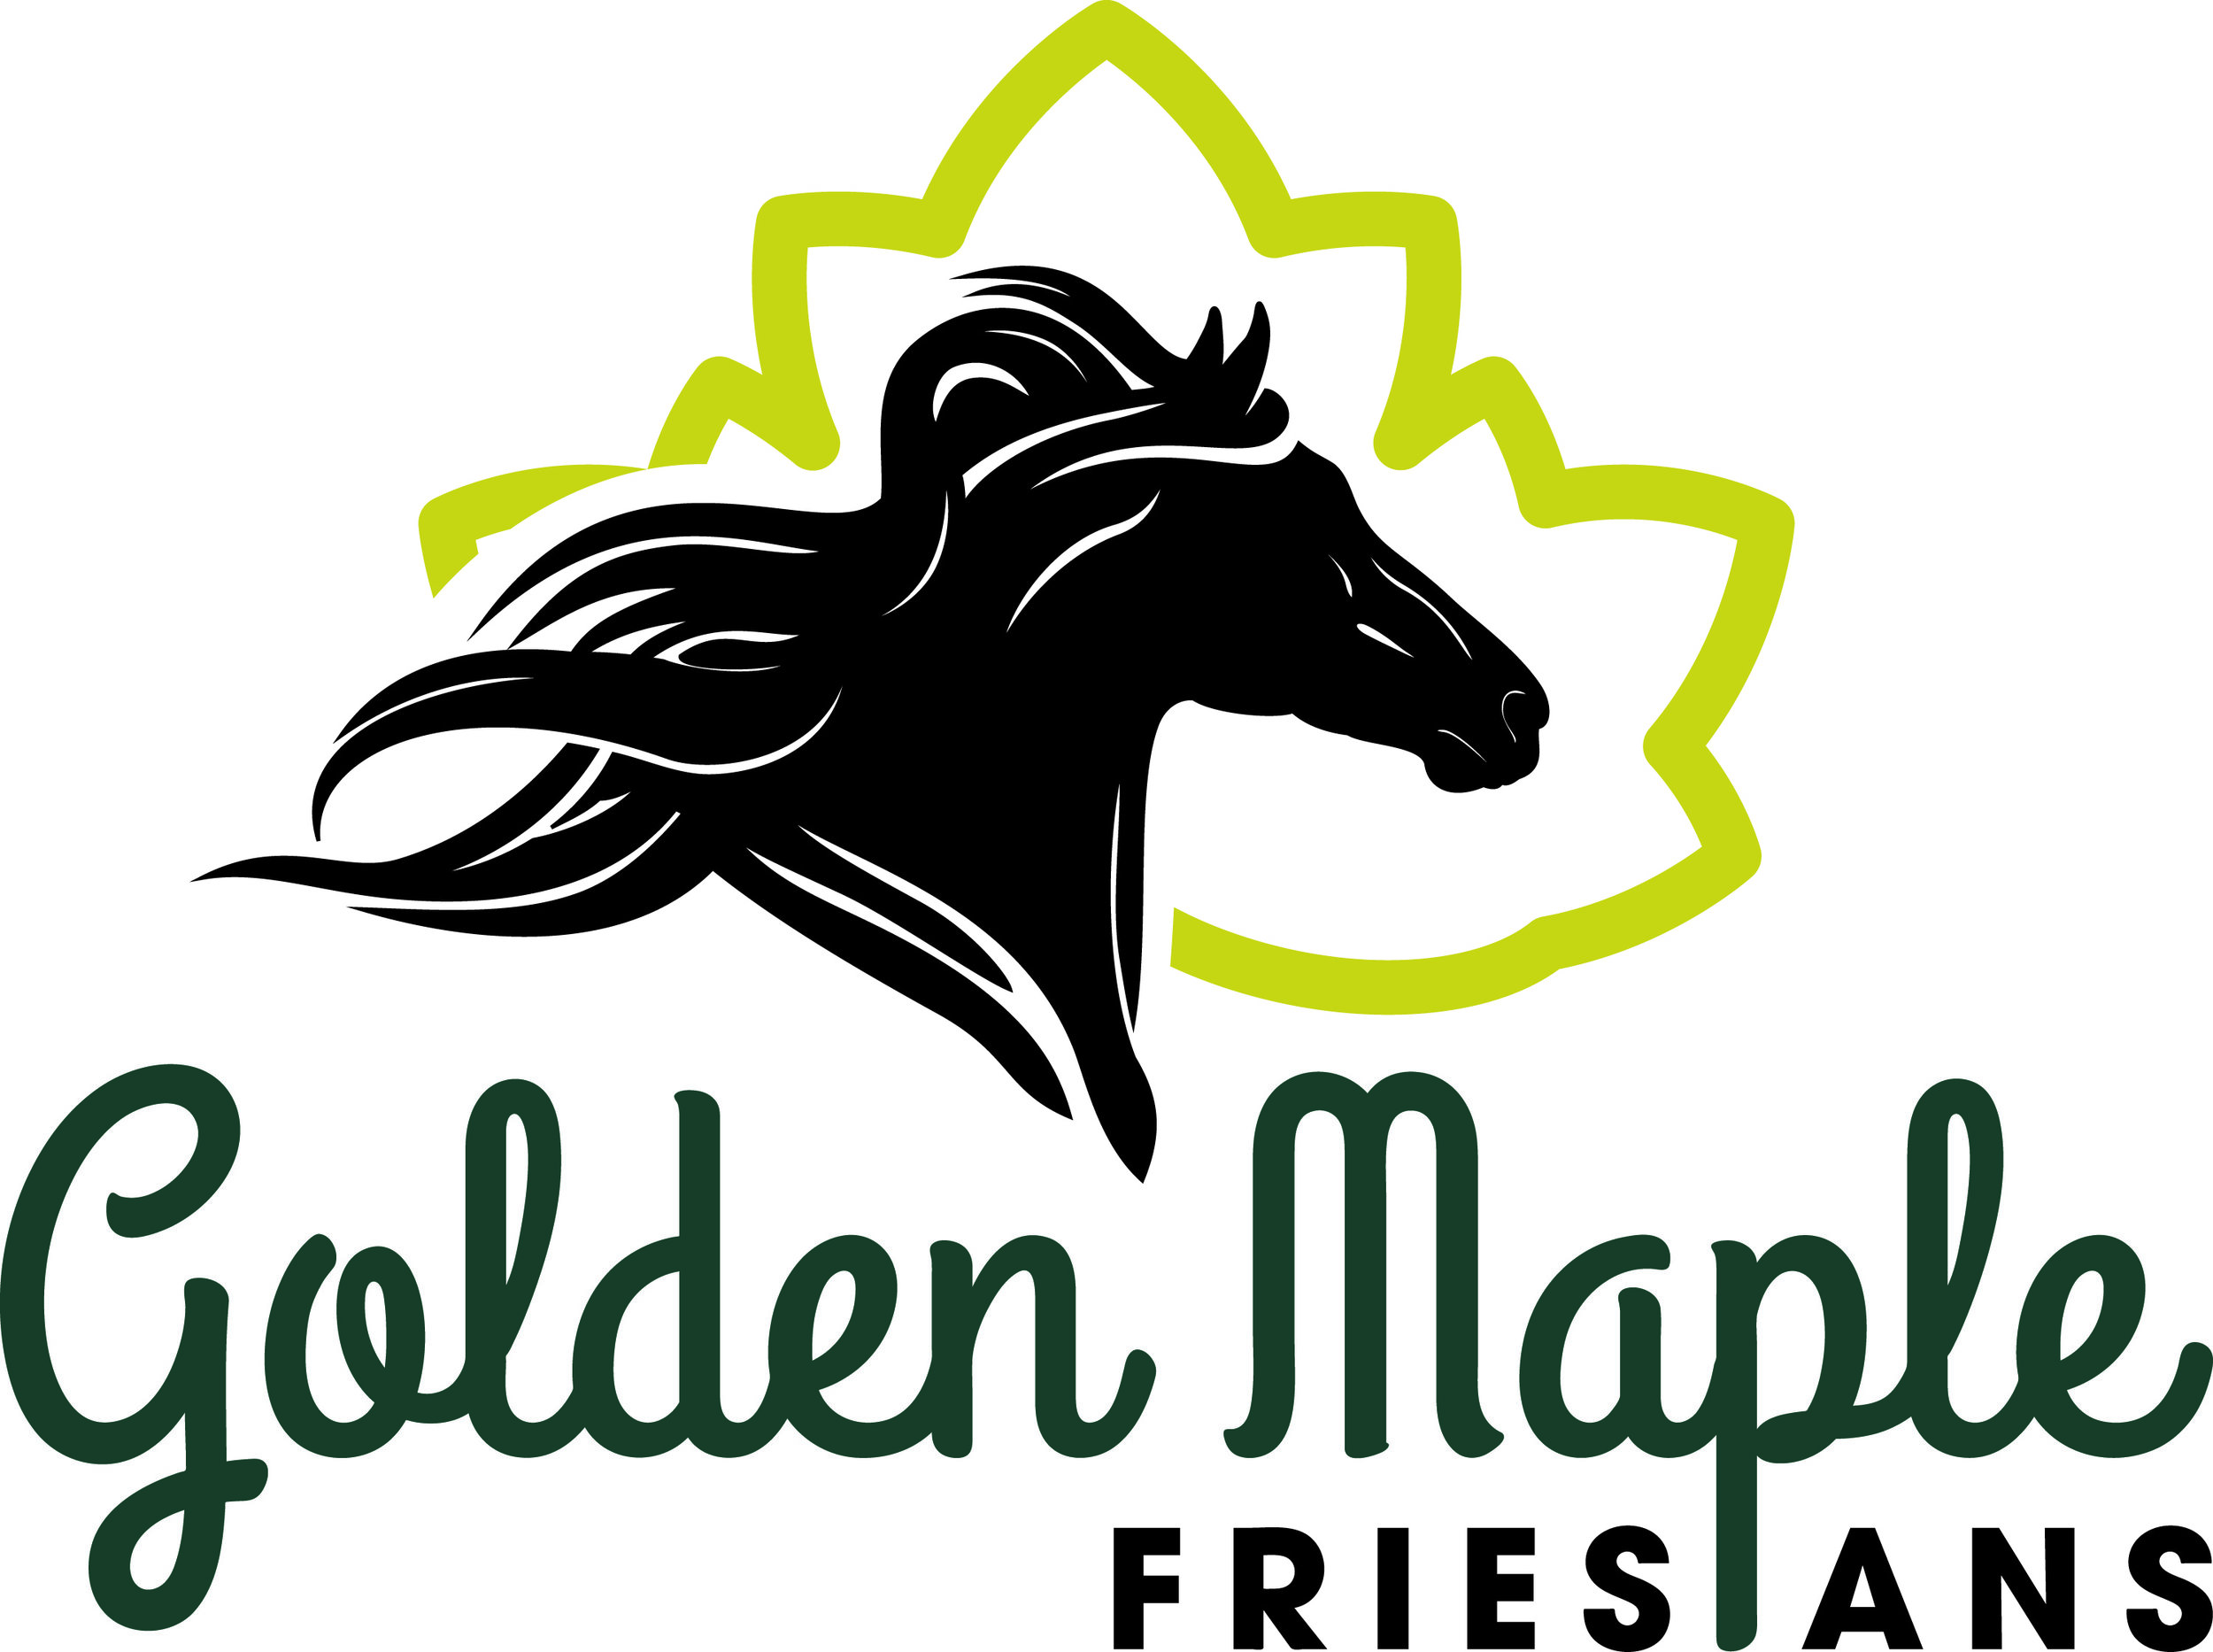 Golden Maple Friesians / Dr. Tamera Mayo - Find us on Facebook